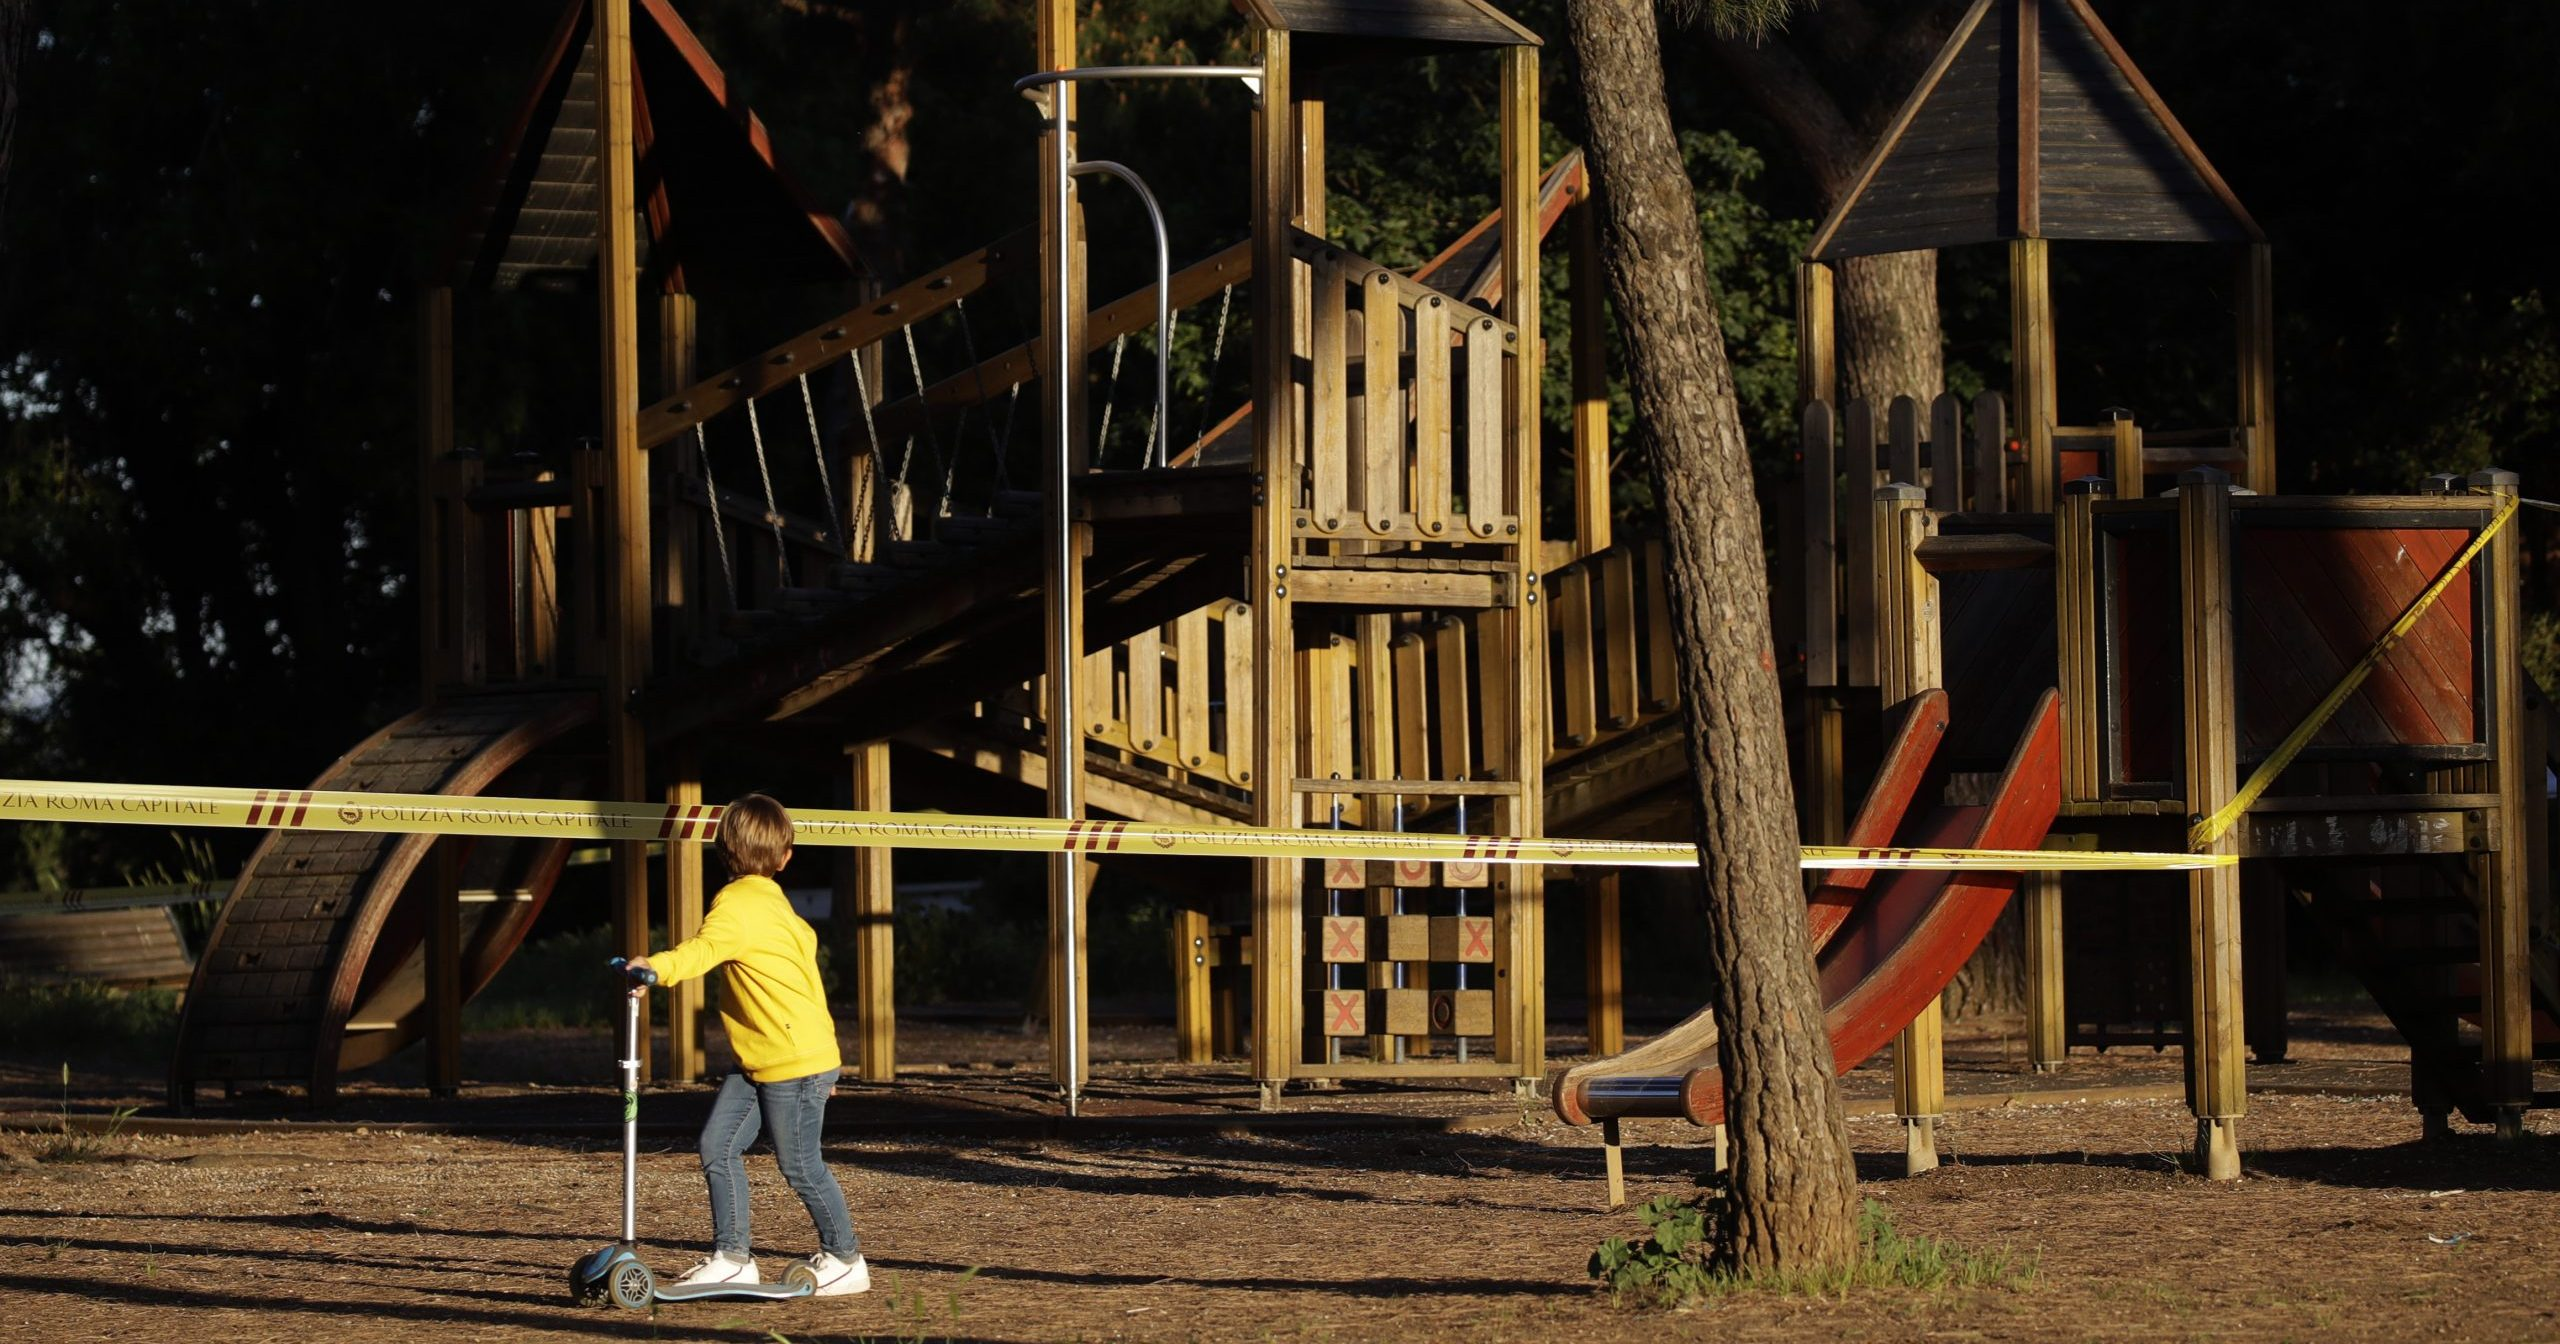 In this May 4, 2020, file photo, a child looks at a sealed-off playground at Rome's Villa Pamphili as the park reopened after several weeks of closure. A national survey of the psychological impact of coronavirus lockdowns on Italian children presented in Rome on June 16, 2020, has quantified what many parents noticed during weeks cooped up at home: Their kids were more irritable, had trouble sleeping, wept inconsolably and regressed developmentally.